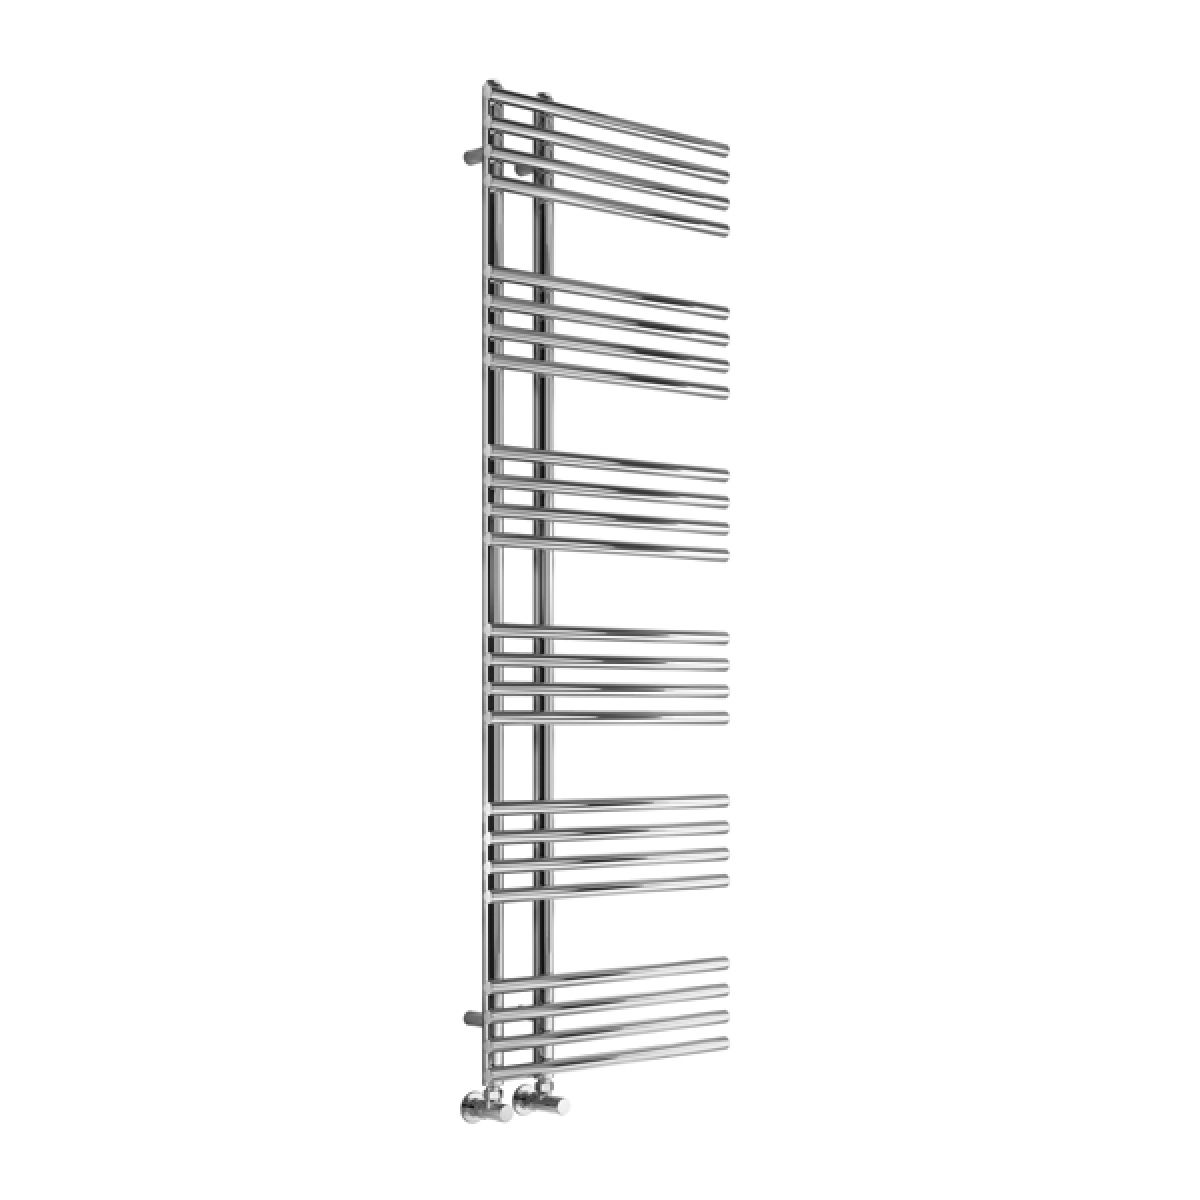 Reina Elisa Chrome Steel Designer Radiator 1550 x 500mm